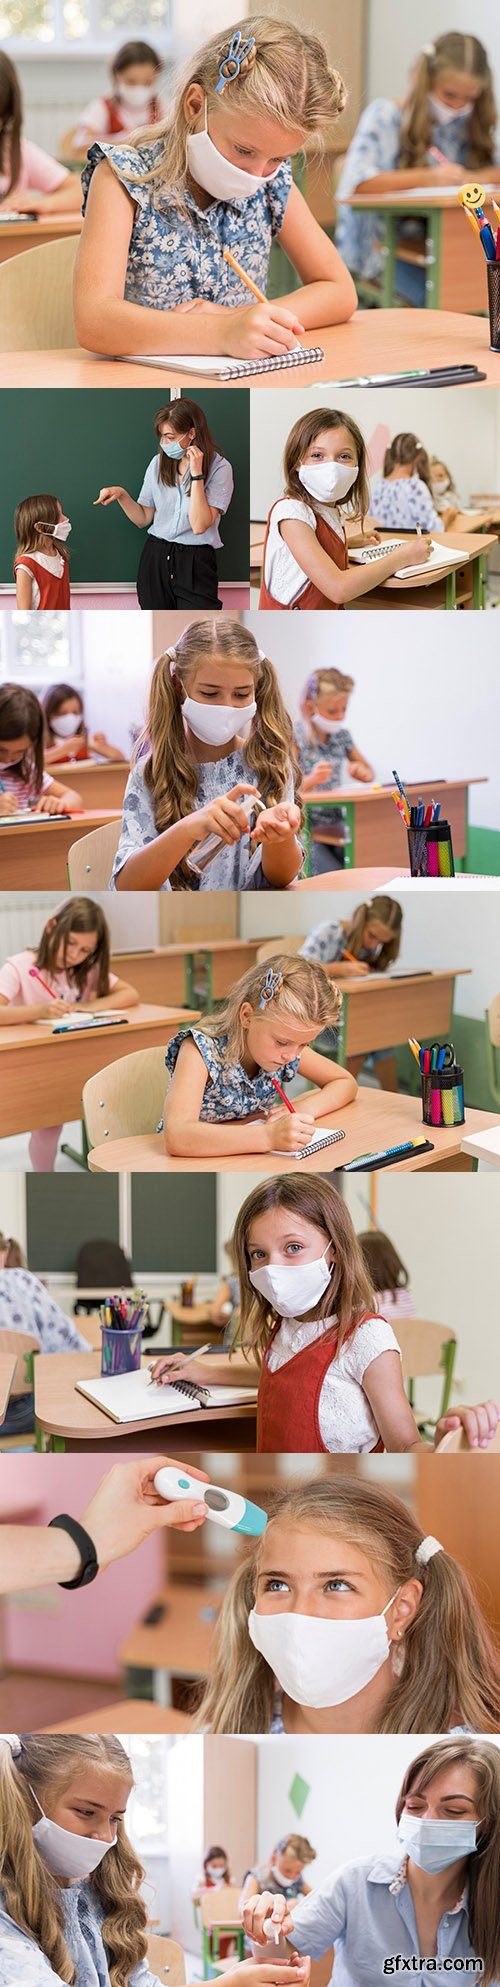 Back to school kids during covid concept